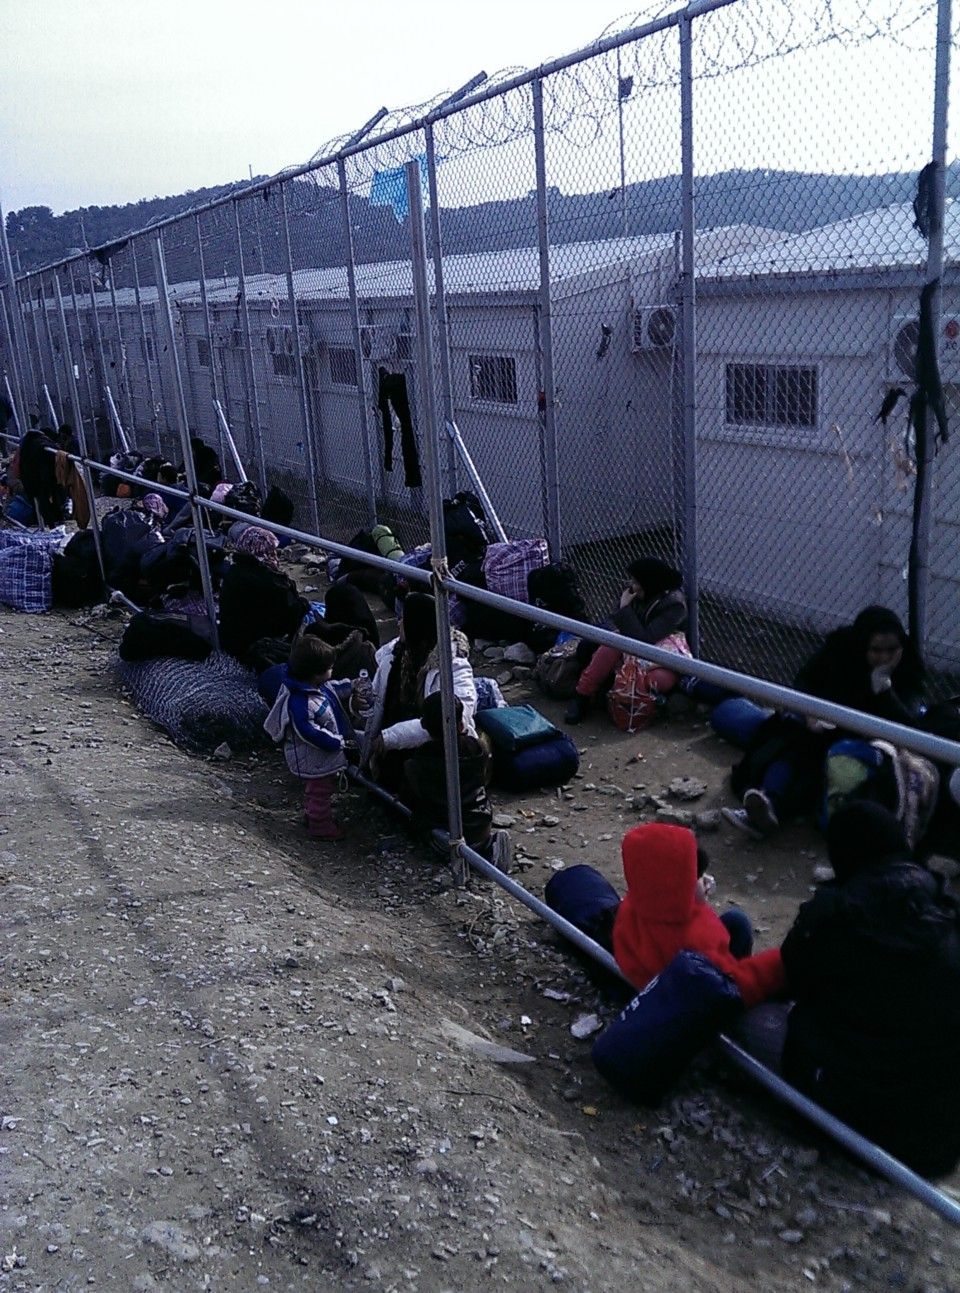 Afghan people, arrived the day before, forming a queue for the registration in Moria camp